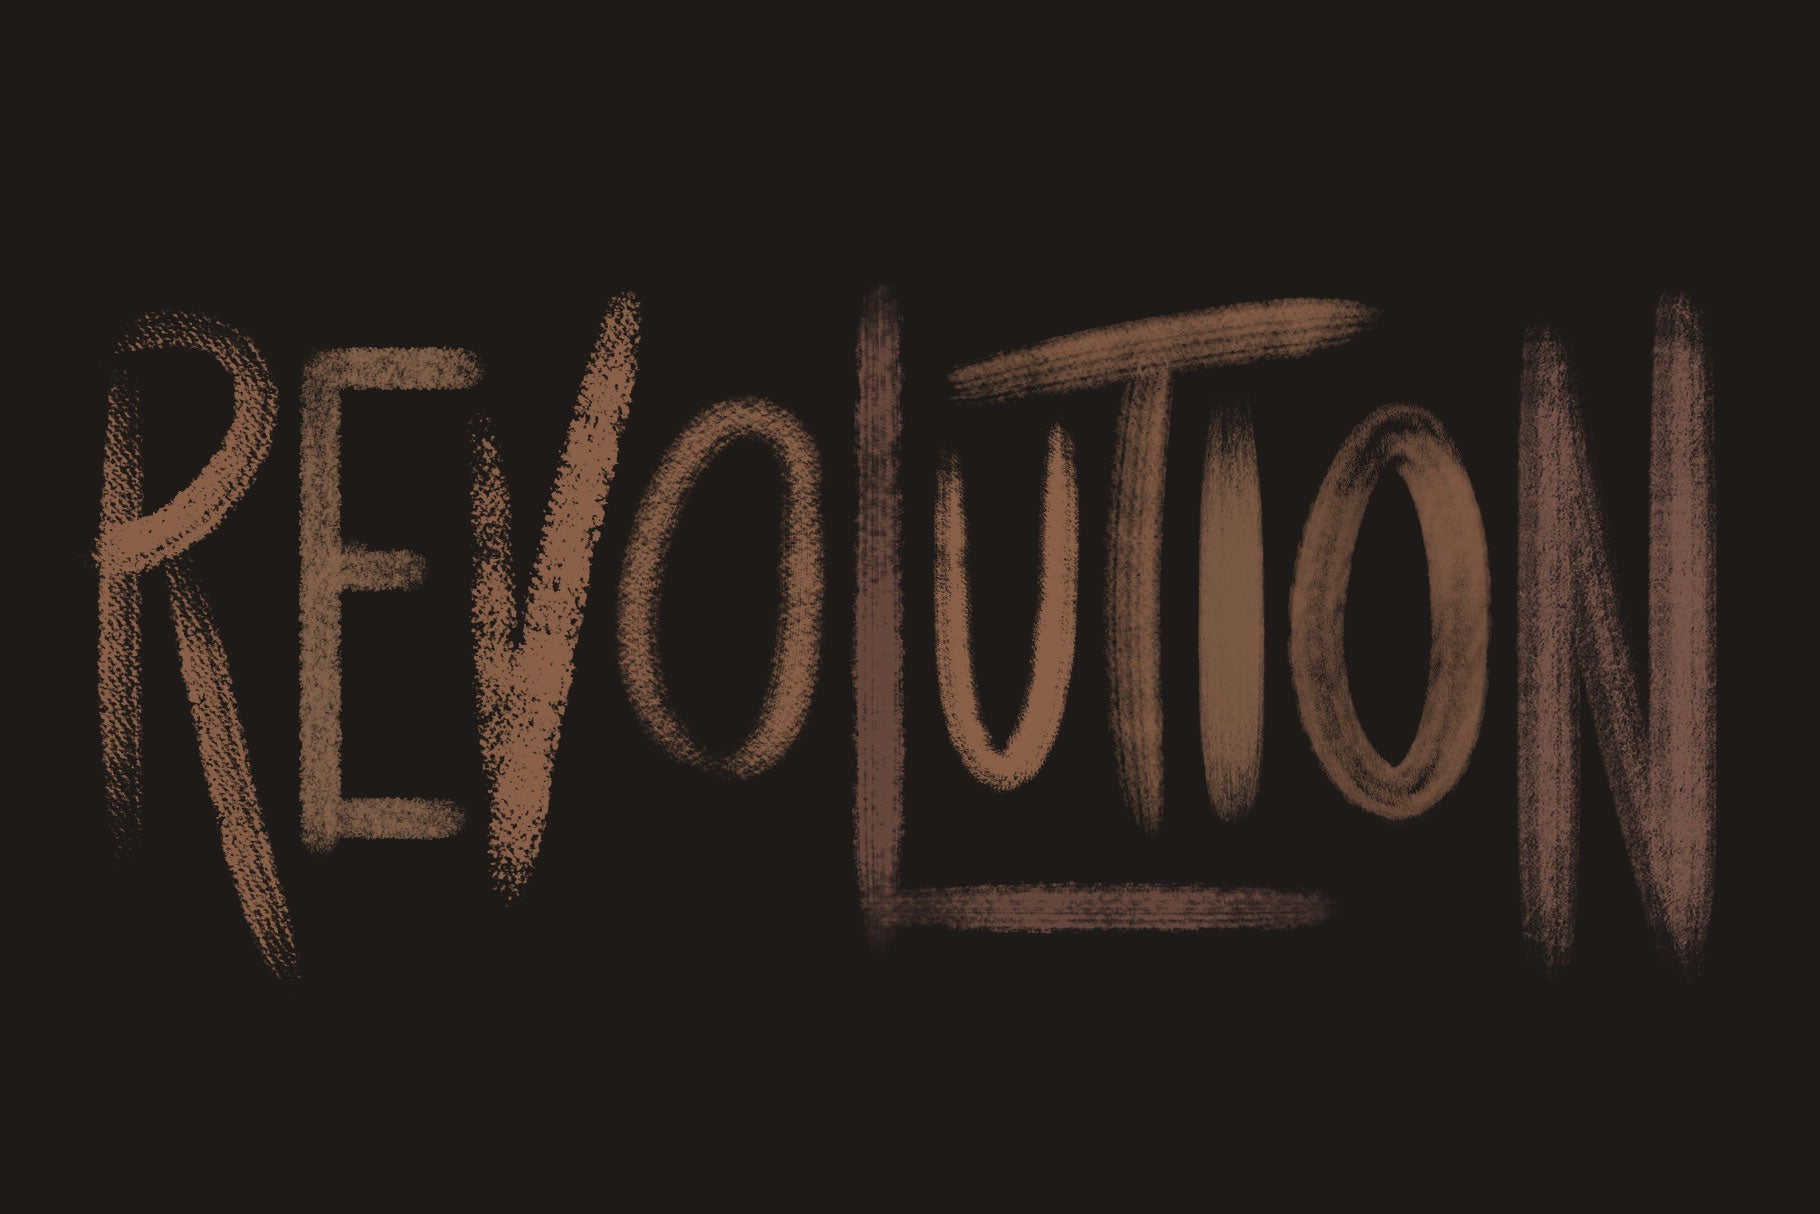 Brushwerk Your New Essential Fashion-Inspired Photoshop Brushes, 'revolution' textured brush lettering